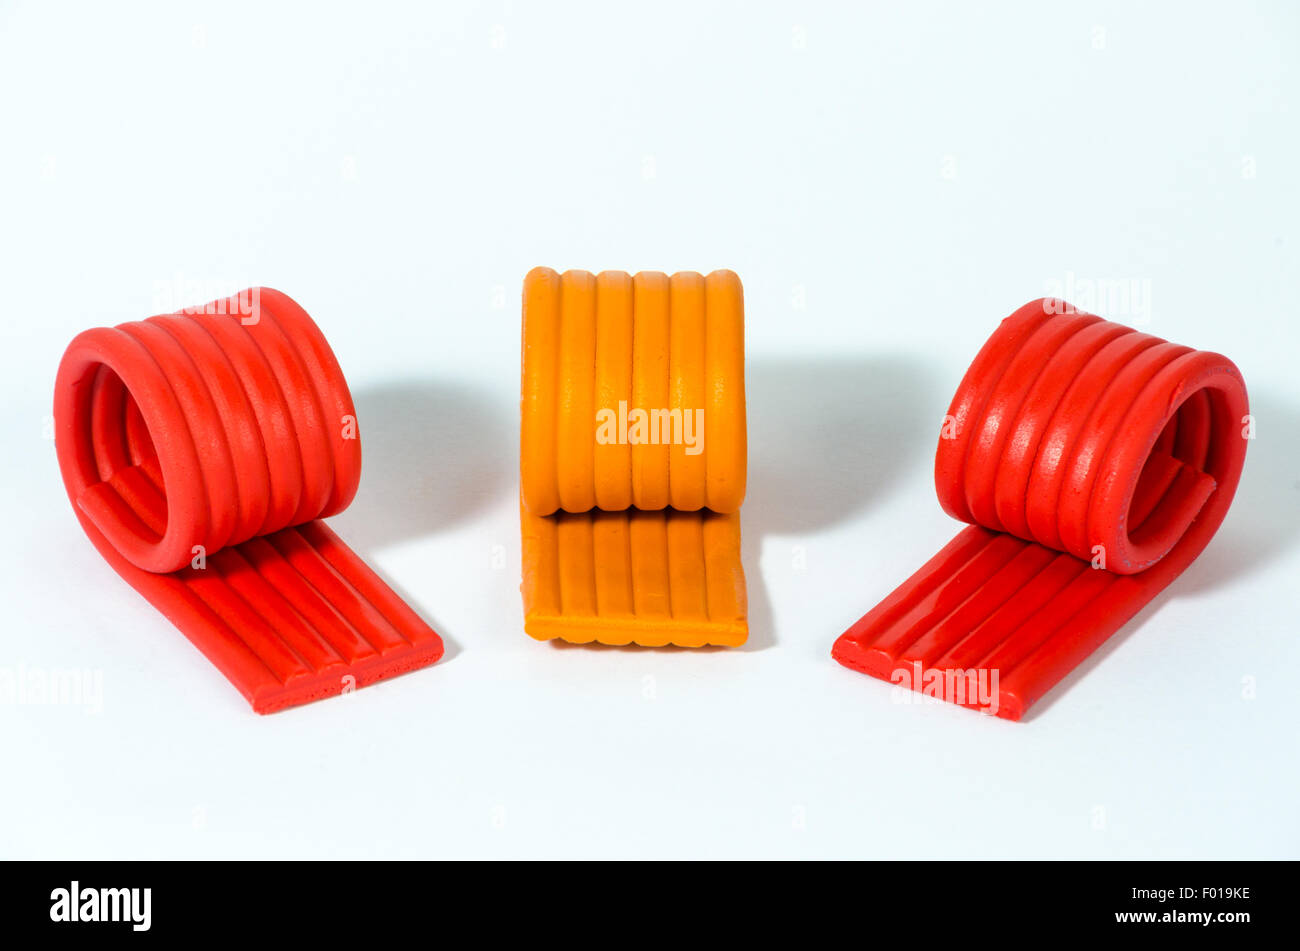 Red and Orange Modelling Clay - Stock Image